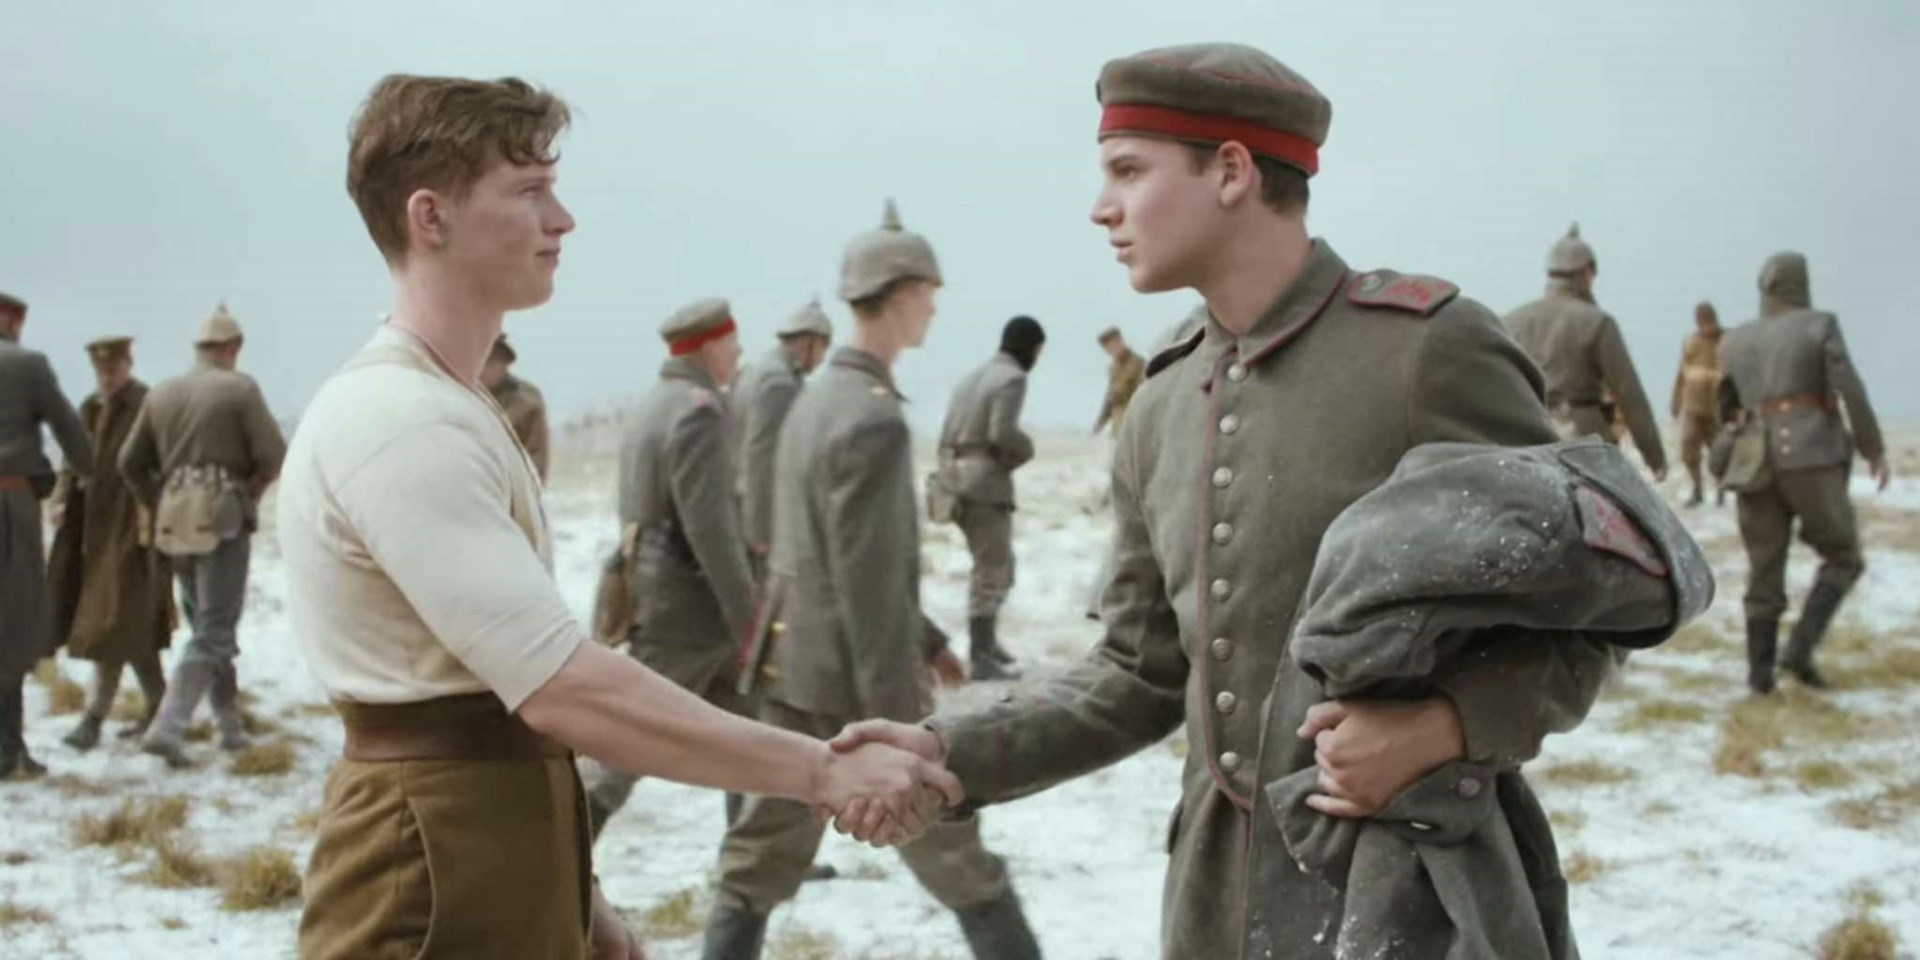 The Christmas Truce of World War I - Foundation for Economic Education